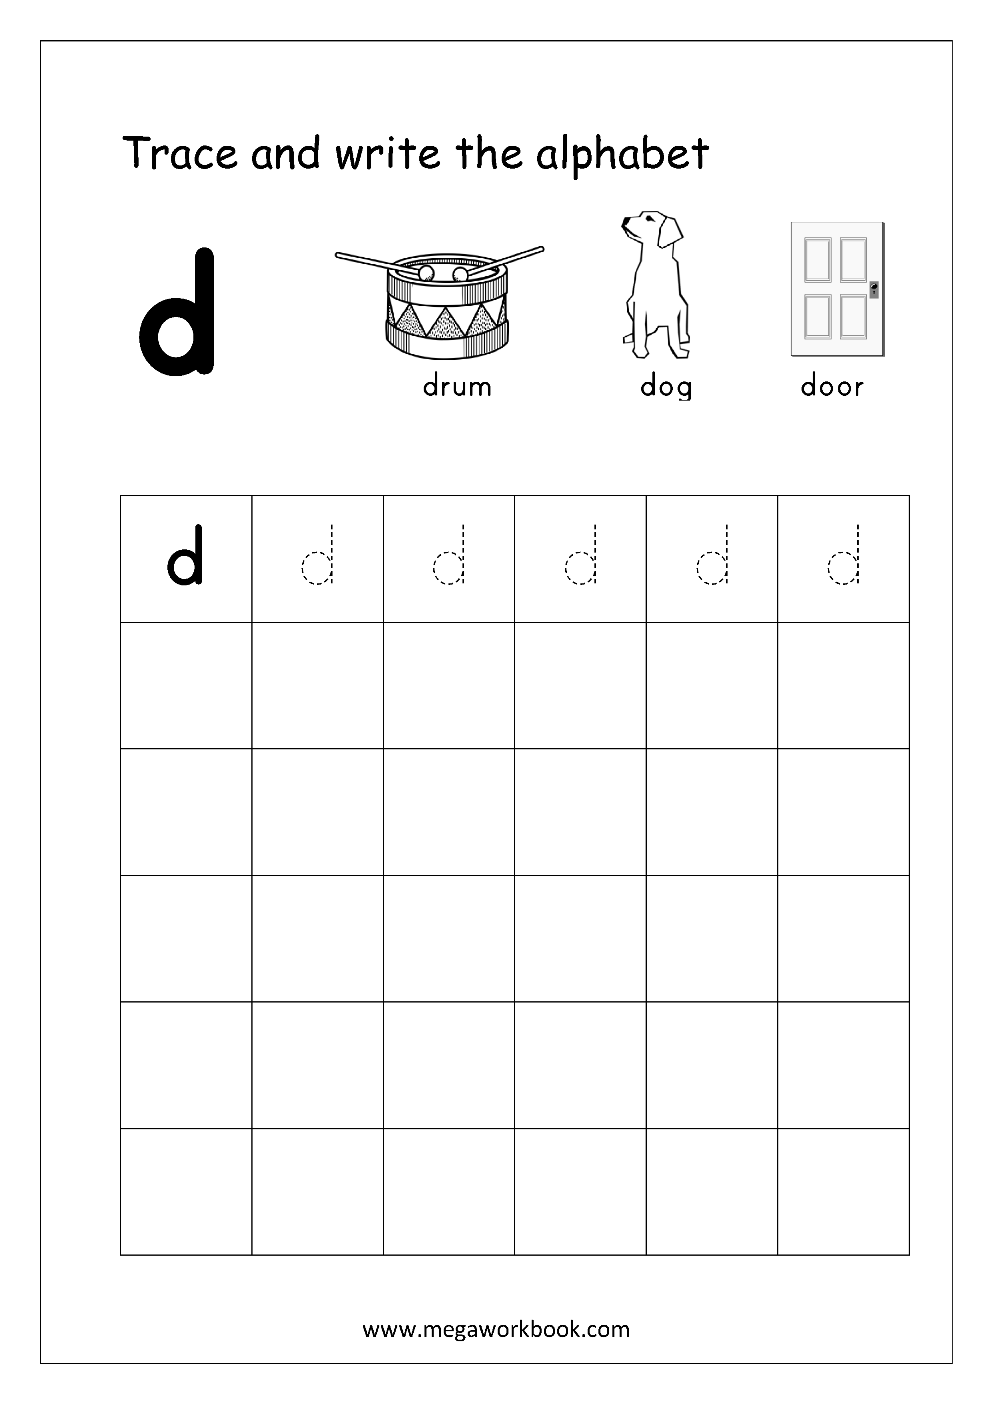 Candle Tracing Page together with Circlelessfun also Christmas Tracing Worksheets further Trace The Alphabet A To Z furthermore Photo Booth. on trace christmas words